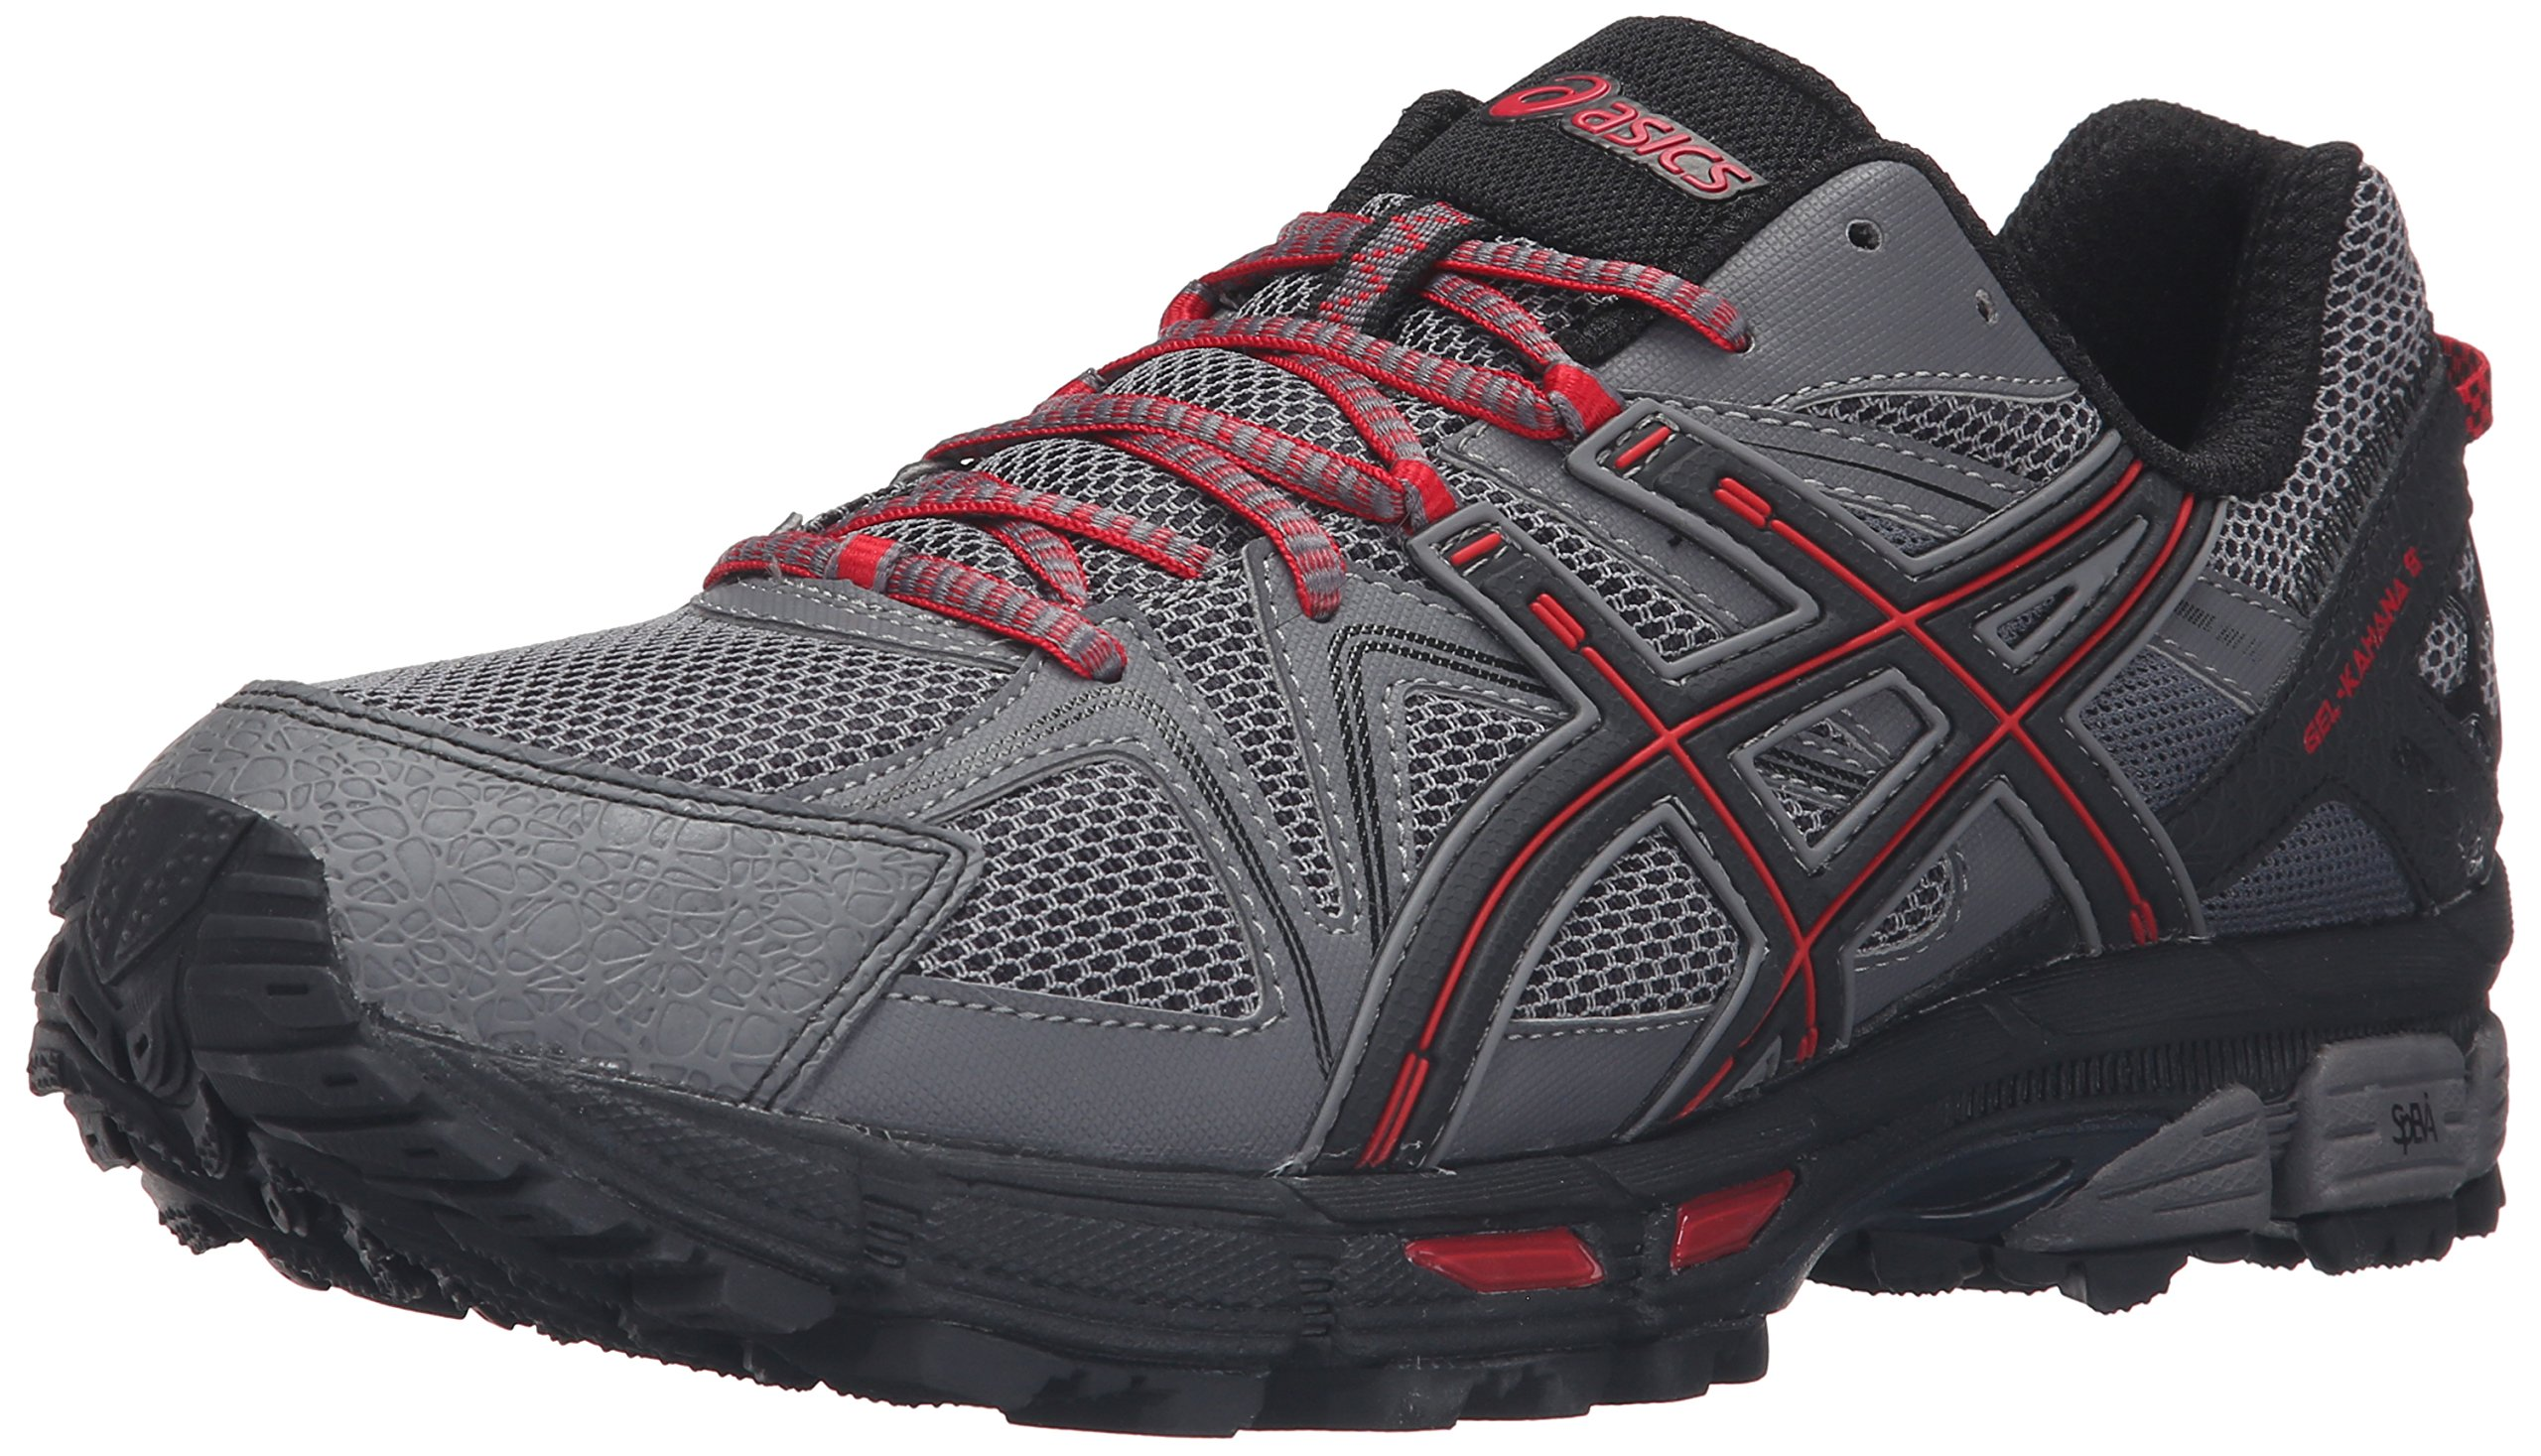 ASICS Men's Gel-Kahana 8 Trail Runner, Shark/Black/True Red, 11 M US by ASICS